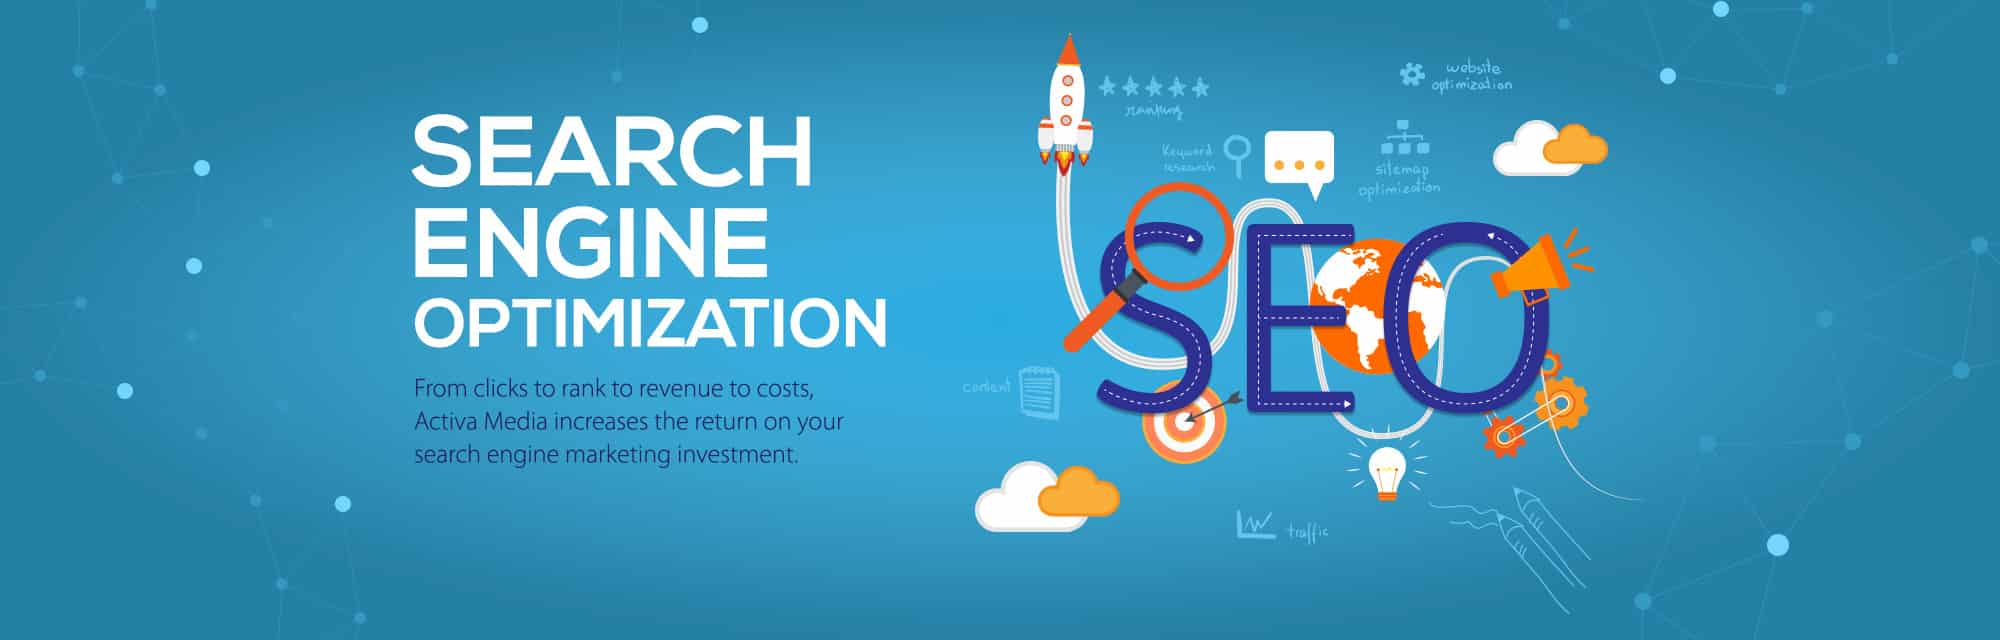 Search Engine Optimisation Services (SEO) In Kenya